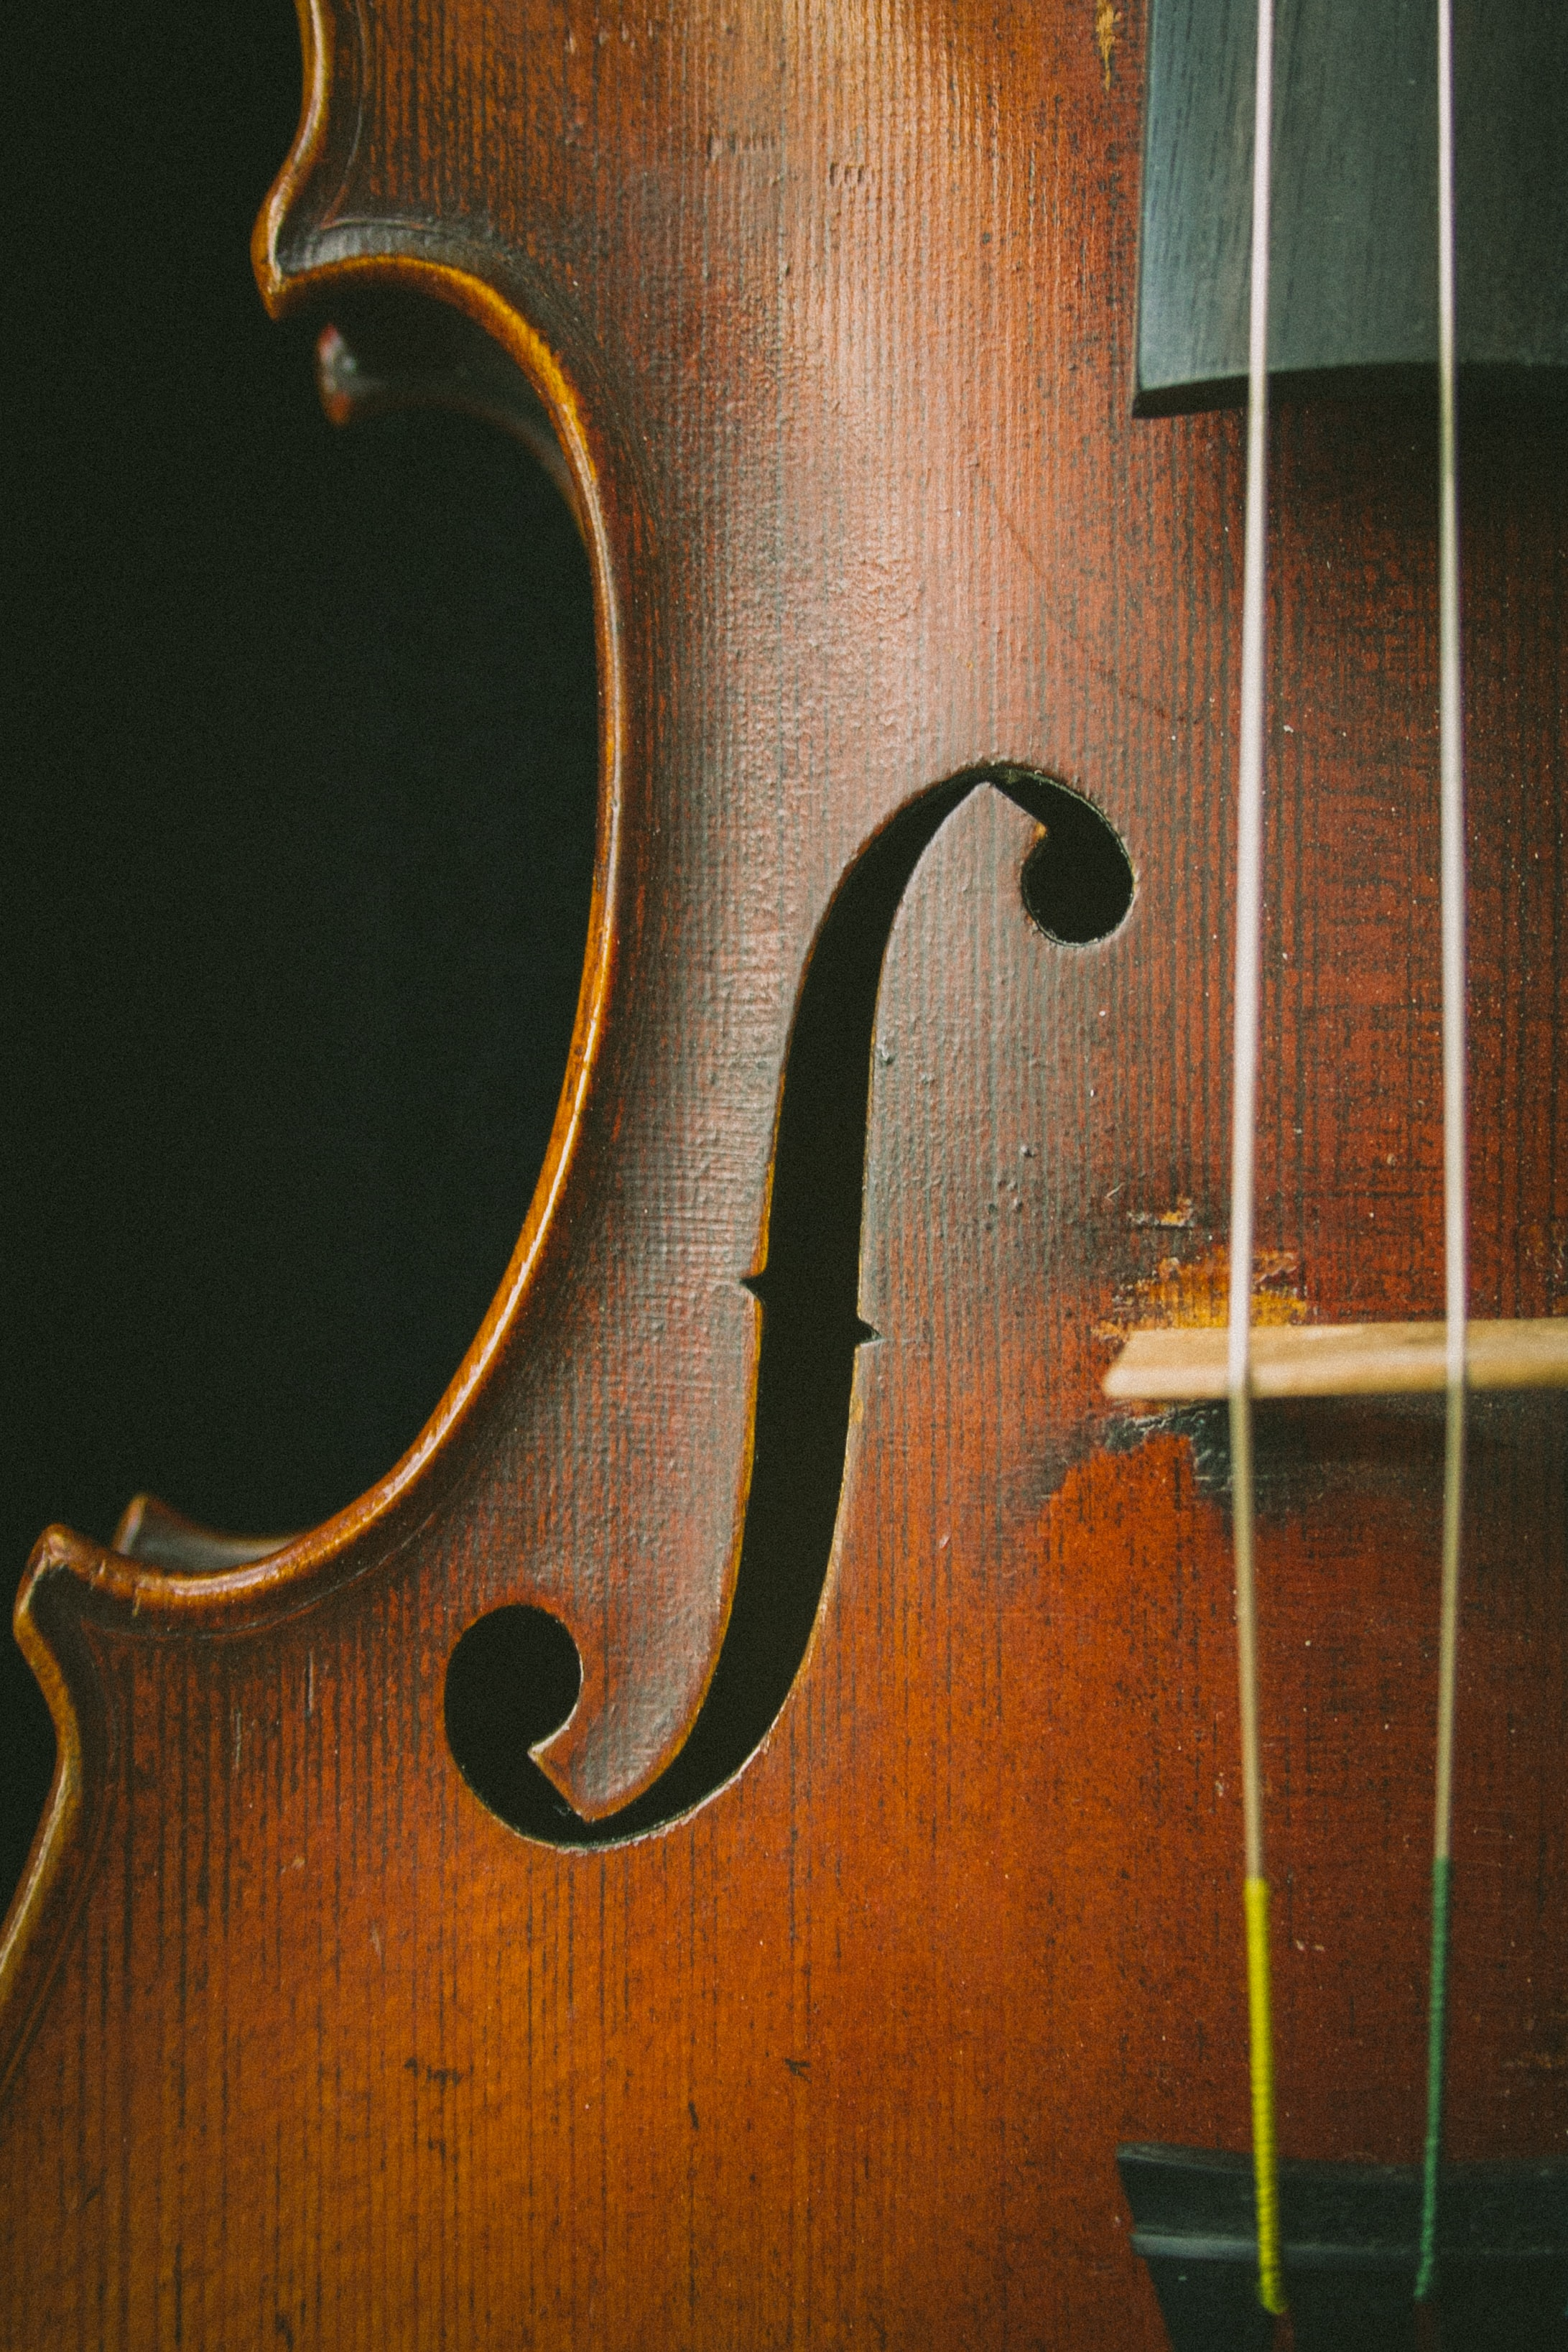 A close-up of the side of an old cello